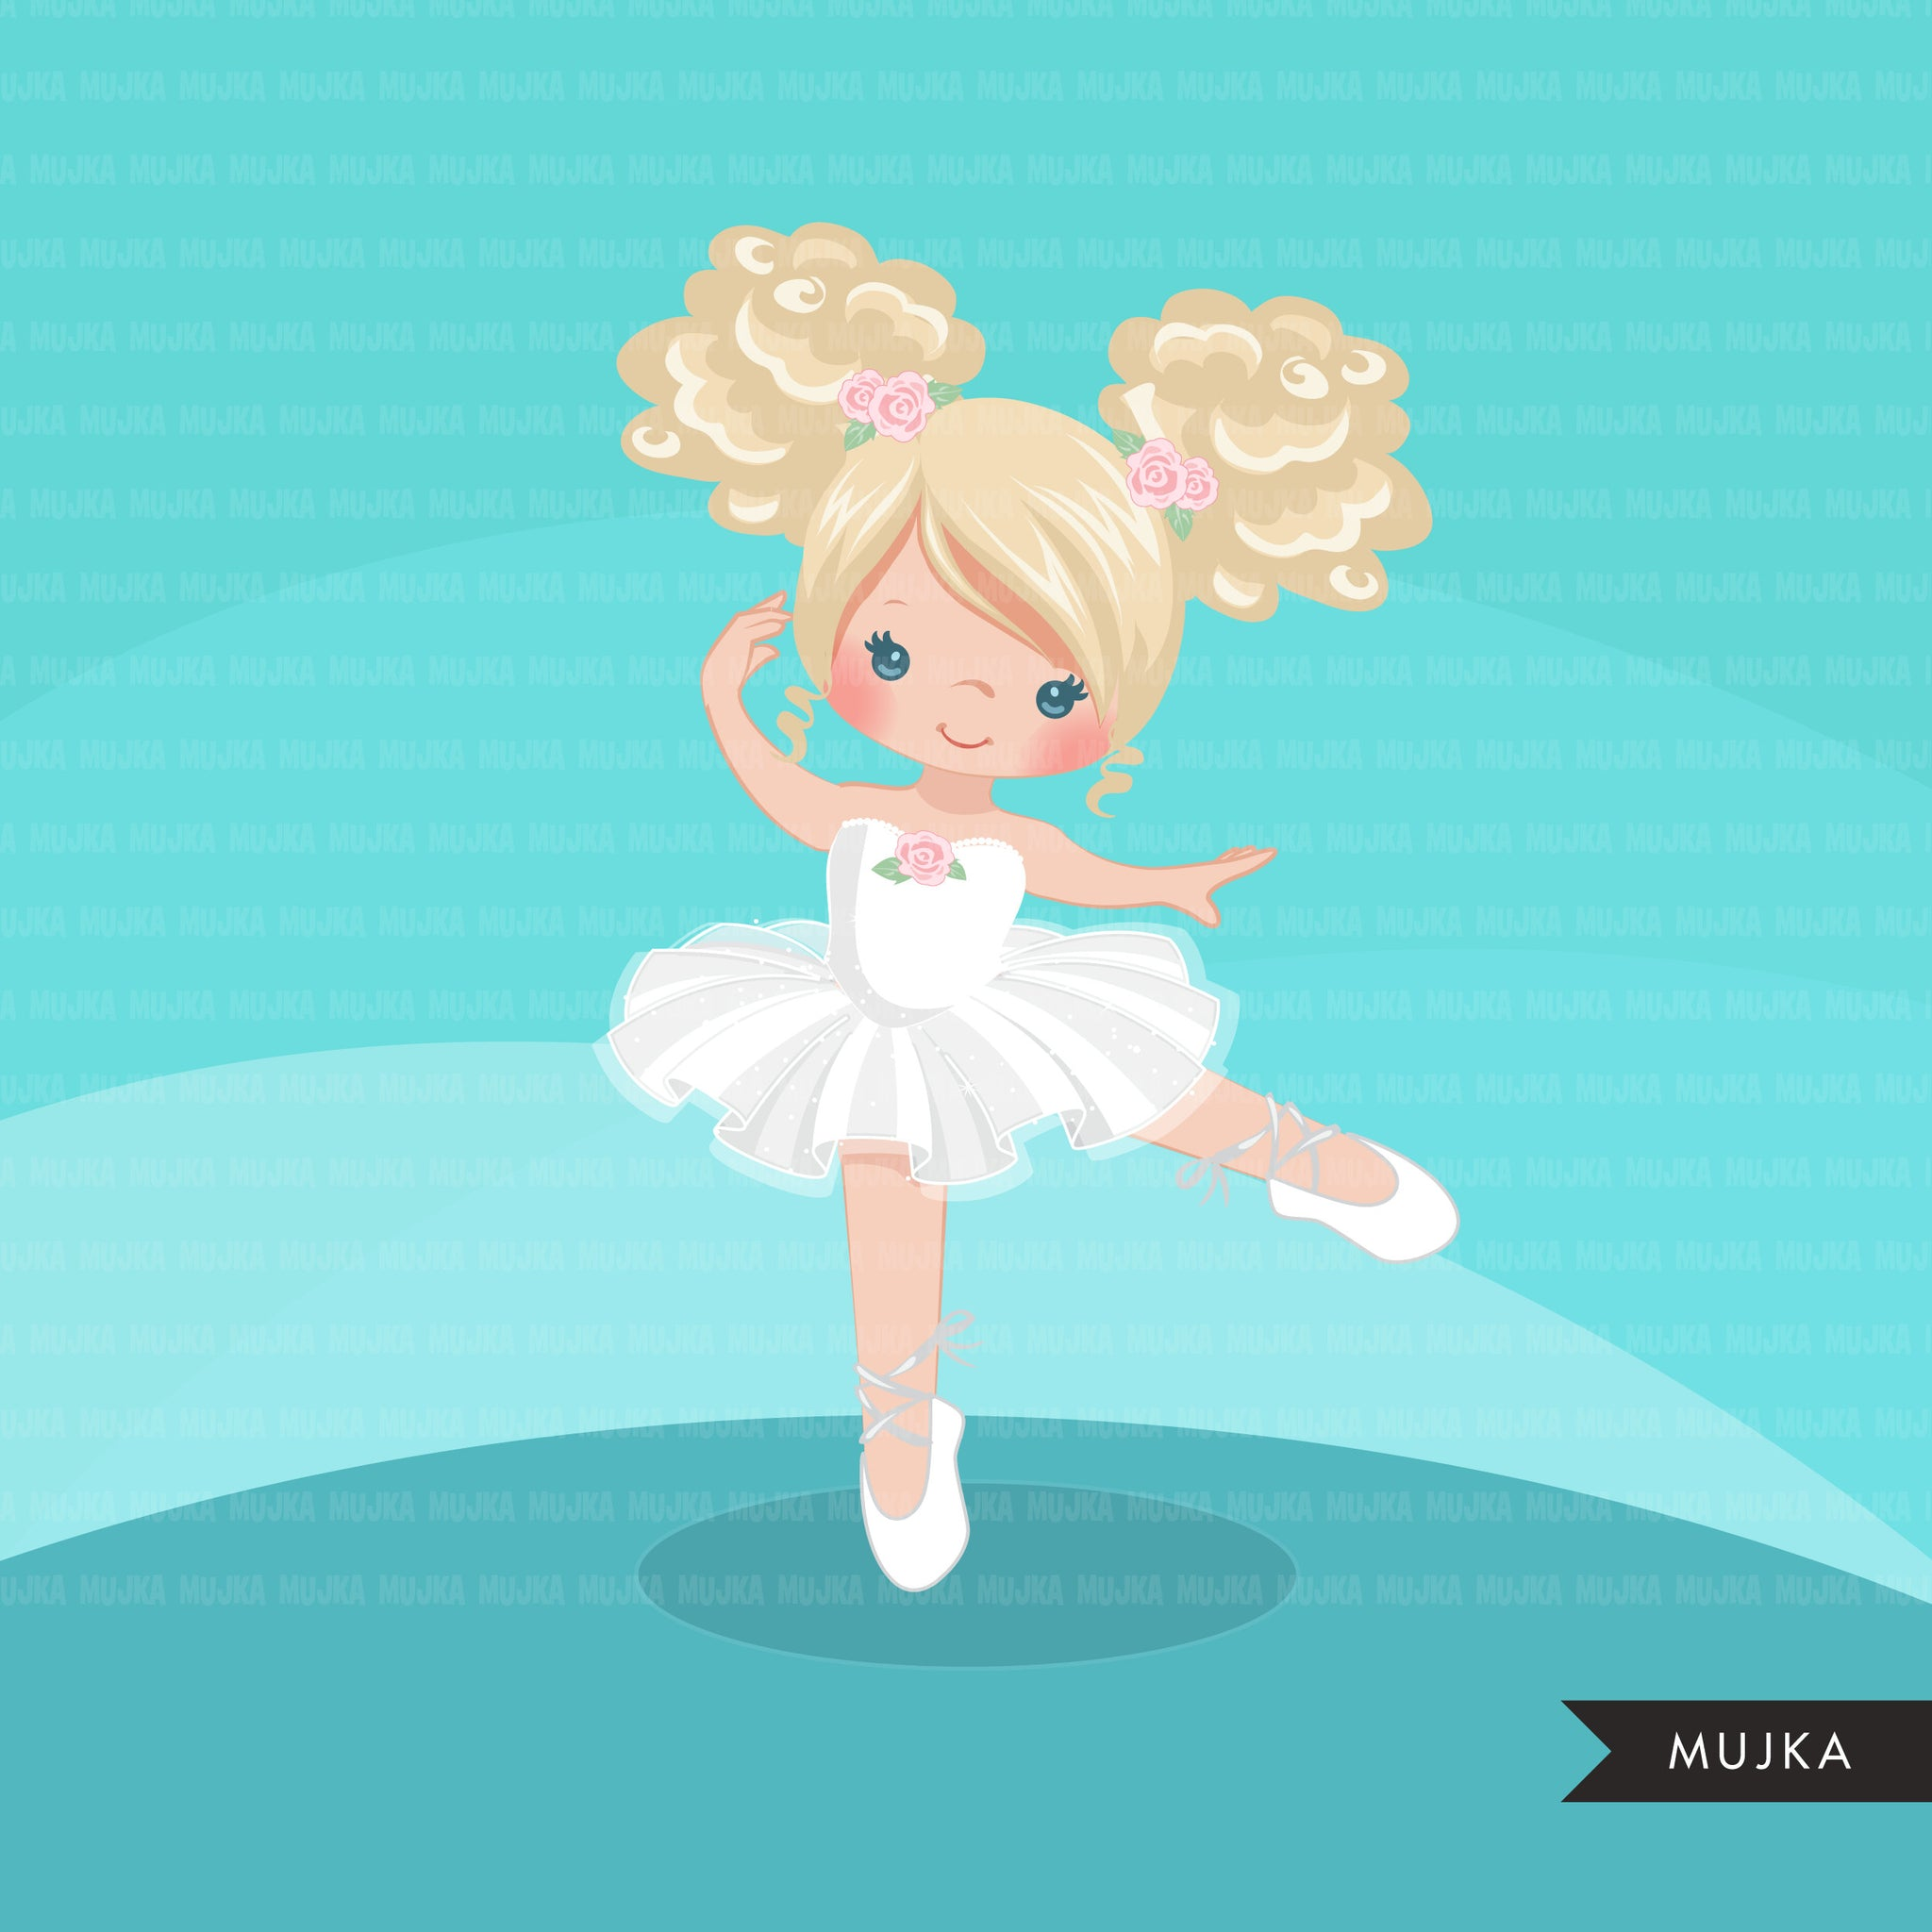 Ballerina clipart, chic ballet girl characters